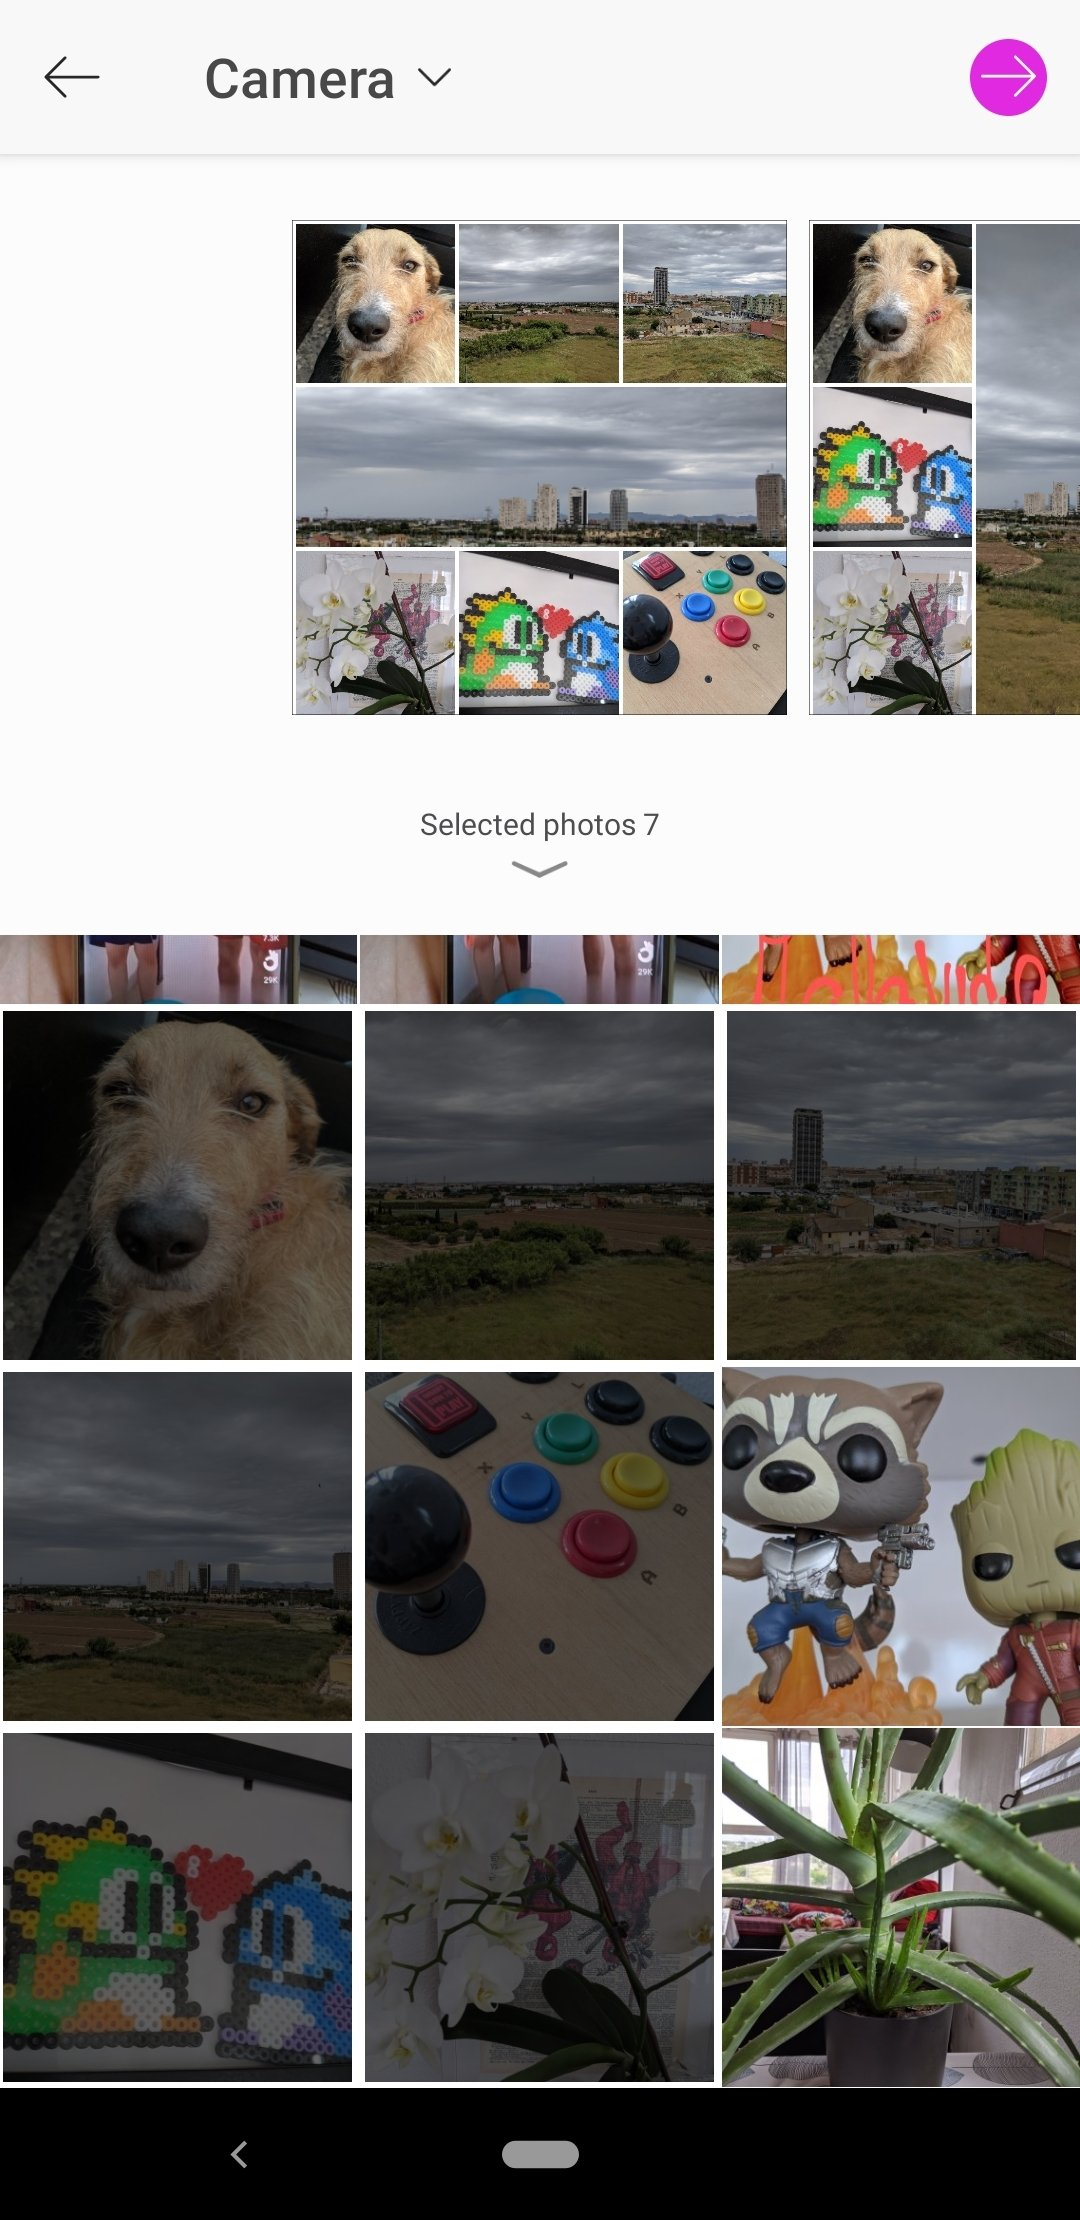 Picsart apk download for android 2.3.6 free